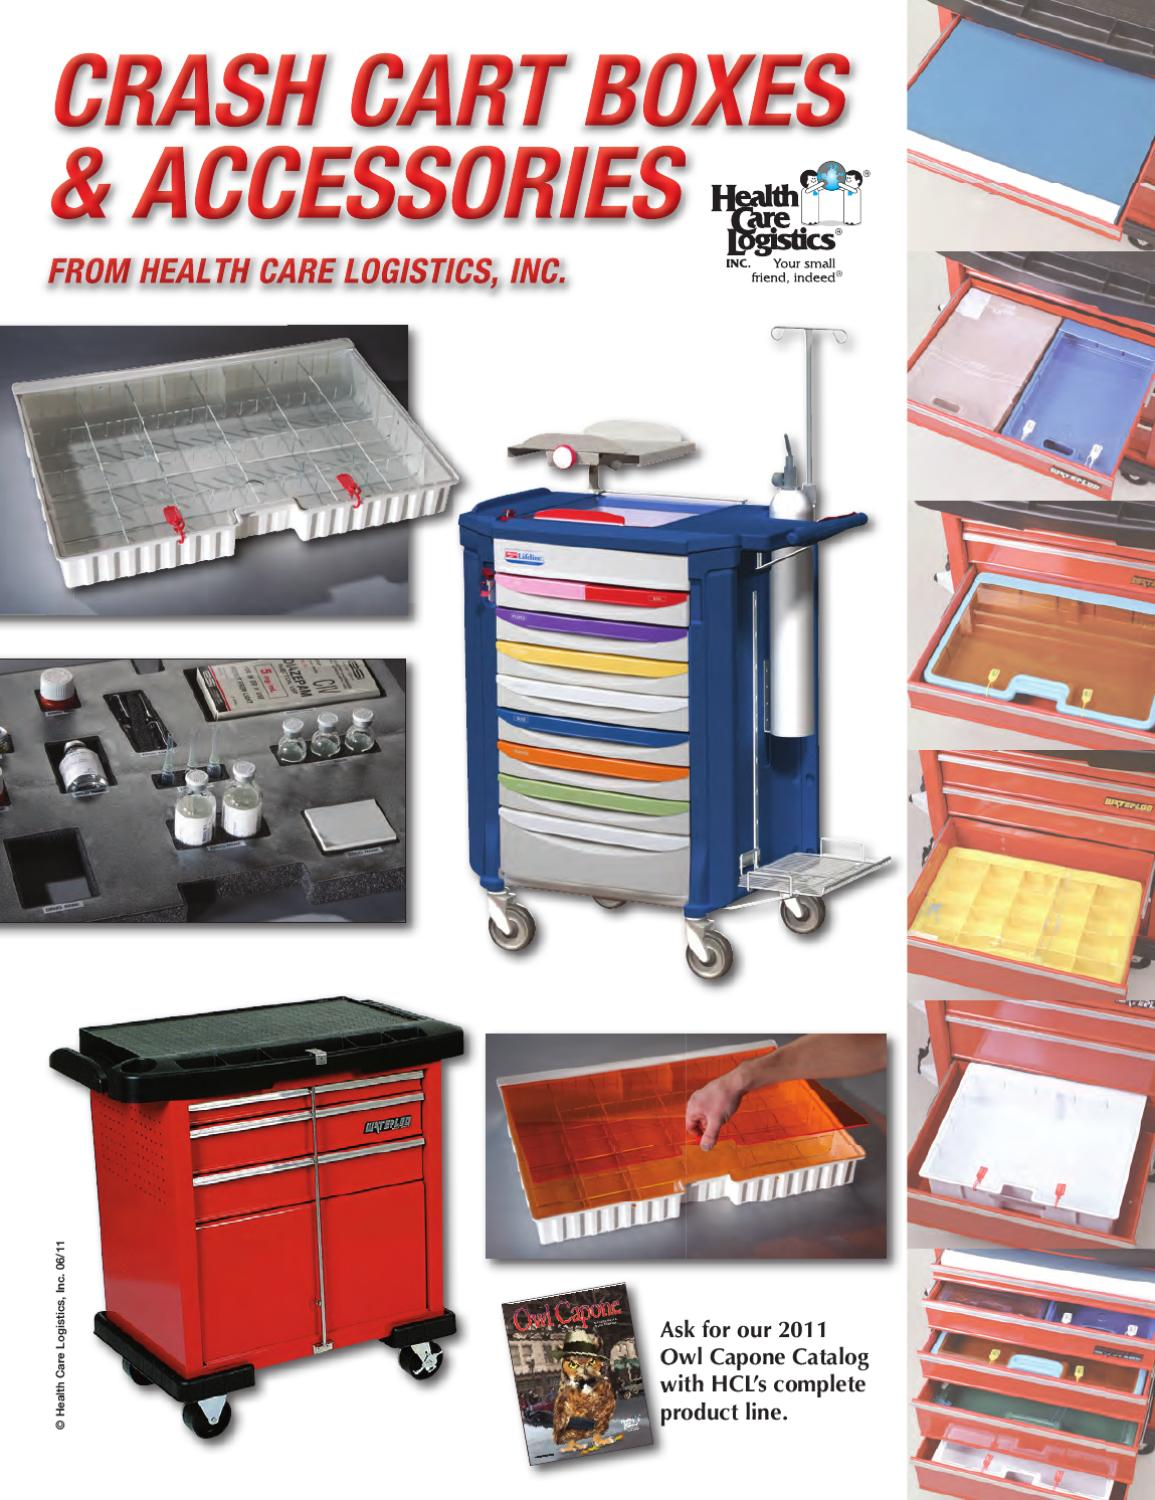 crash cart Hospital medical carts you can depend on capsa healthcare manufactures only the best hospital emergency crash carts, iv carts, anesthesia carts & treatments carts the industry has to offer.